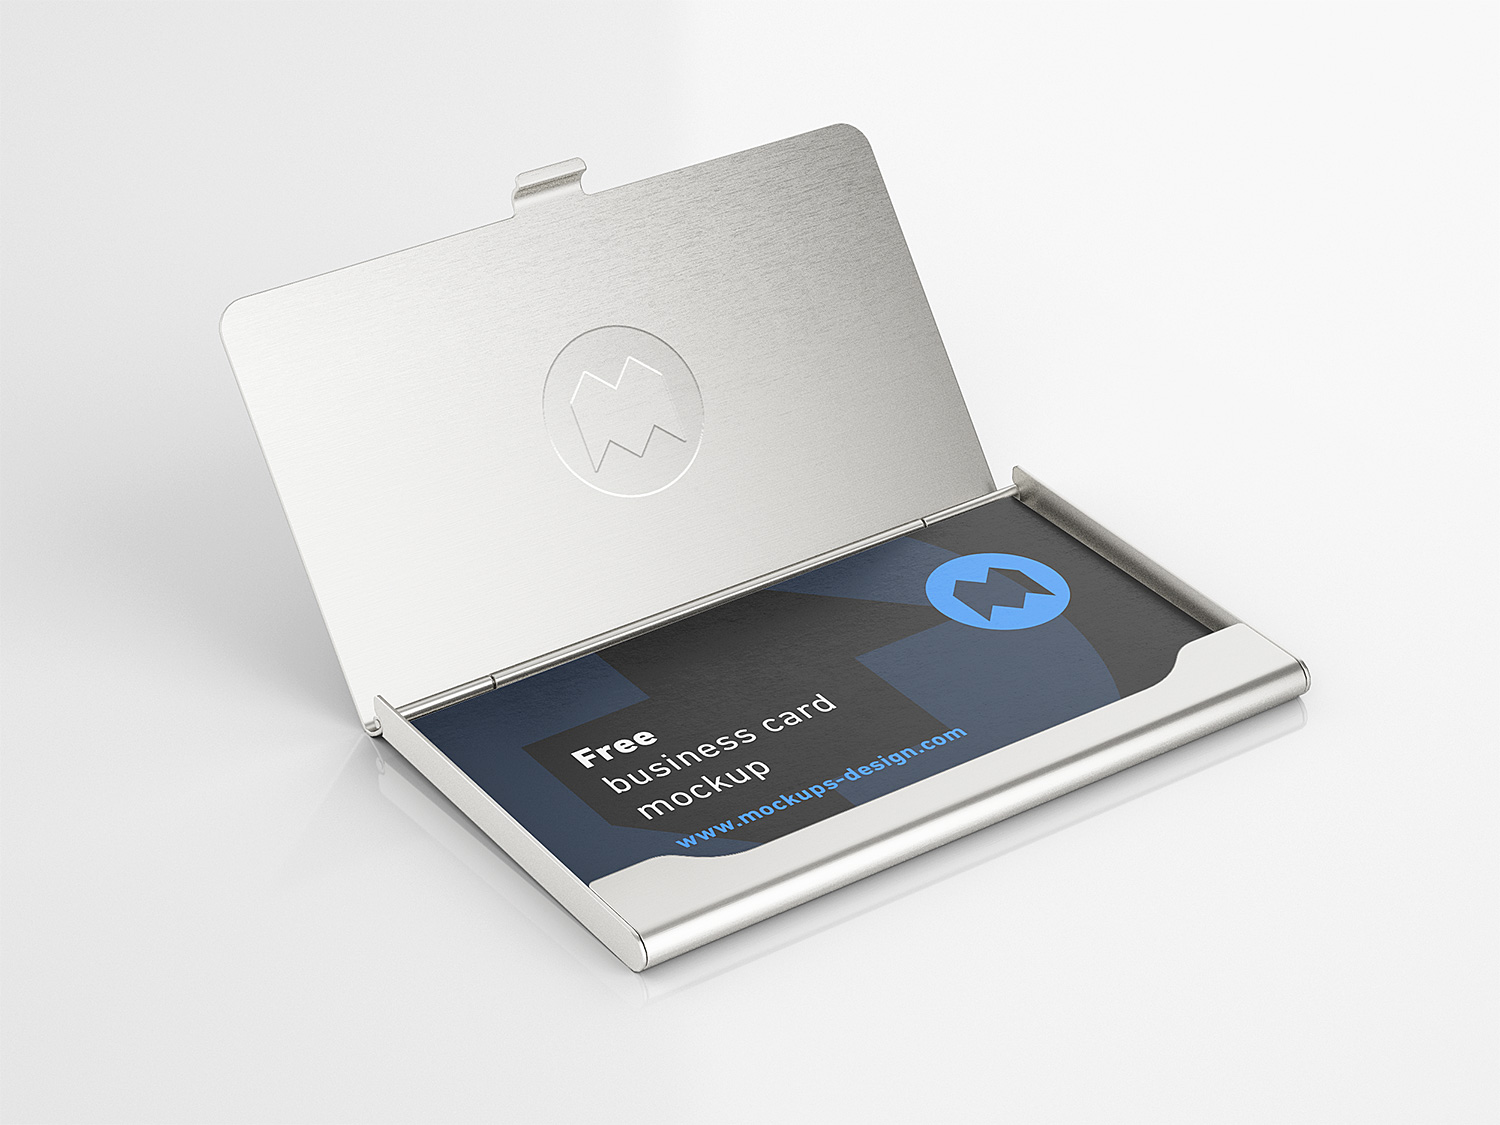 Business-Card-Holder-Mockup-01